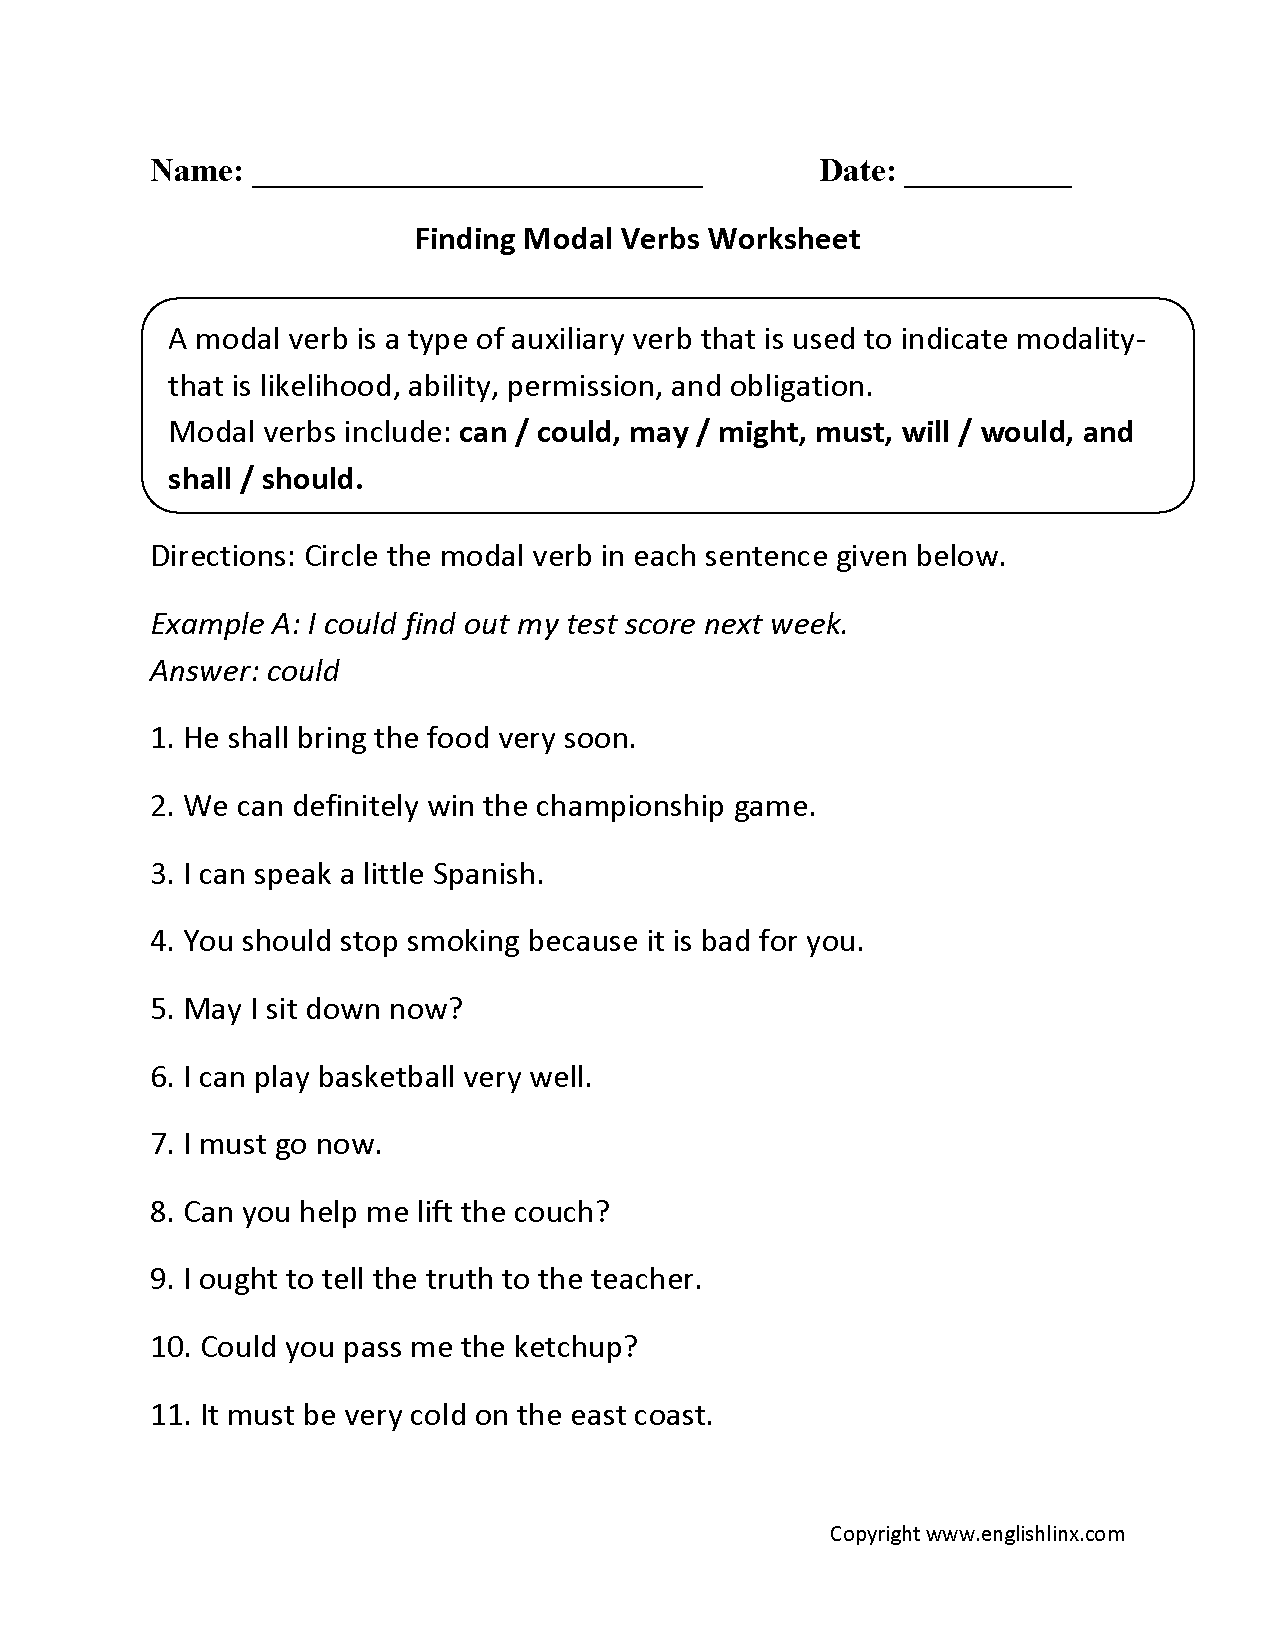 Modal Auxiliary Verbs 4th Grade Worksheet